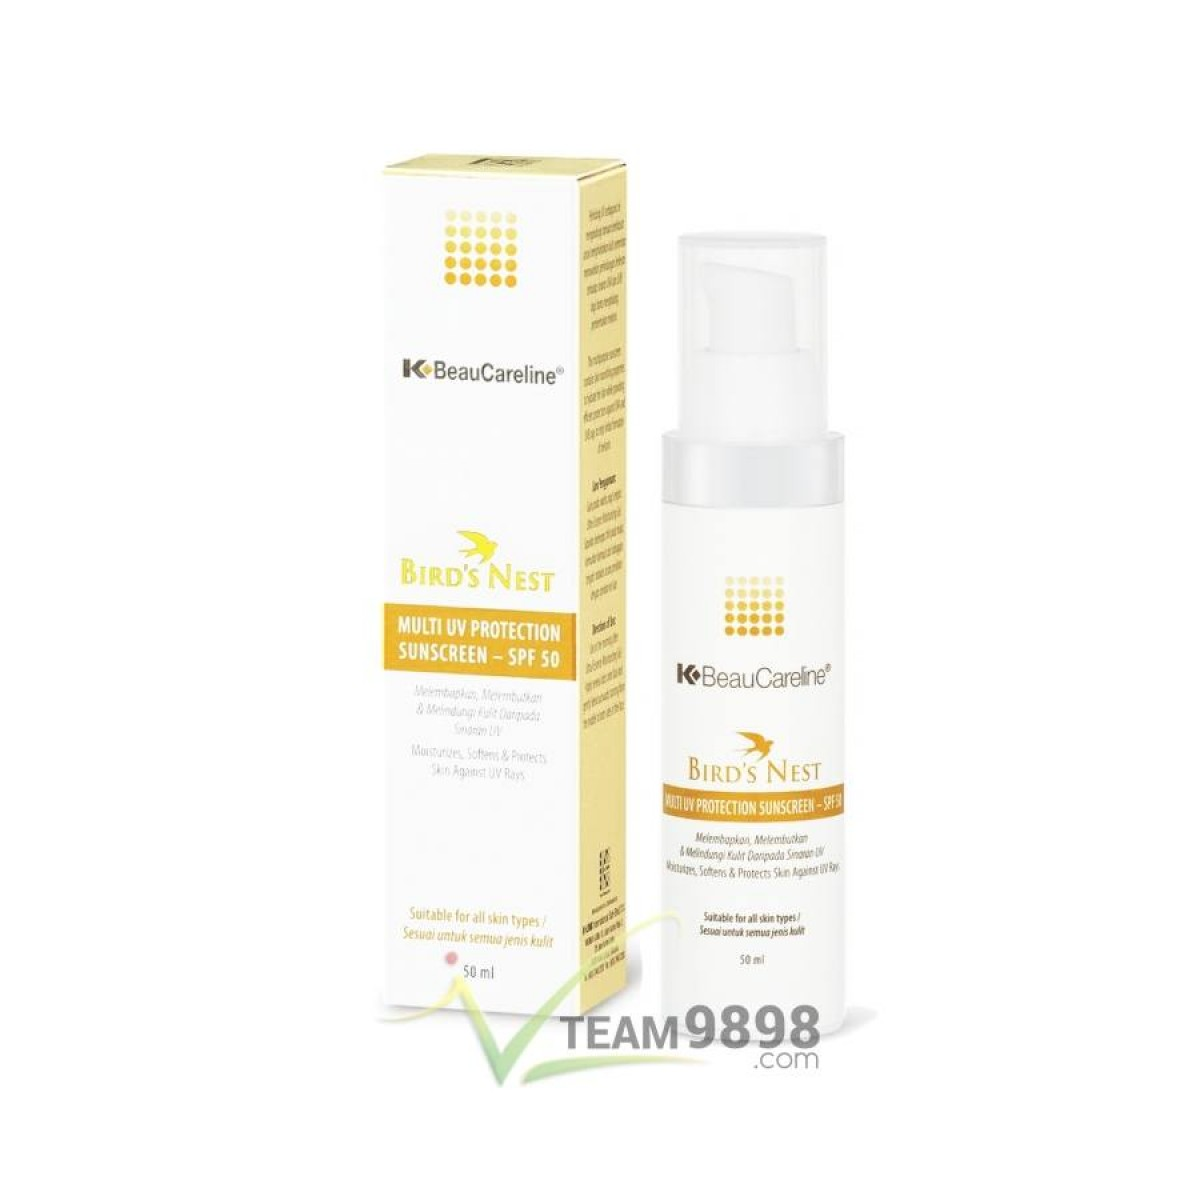 K-BeauCareline Multi UV Protection Sunscreen SPF 50